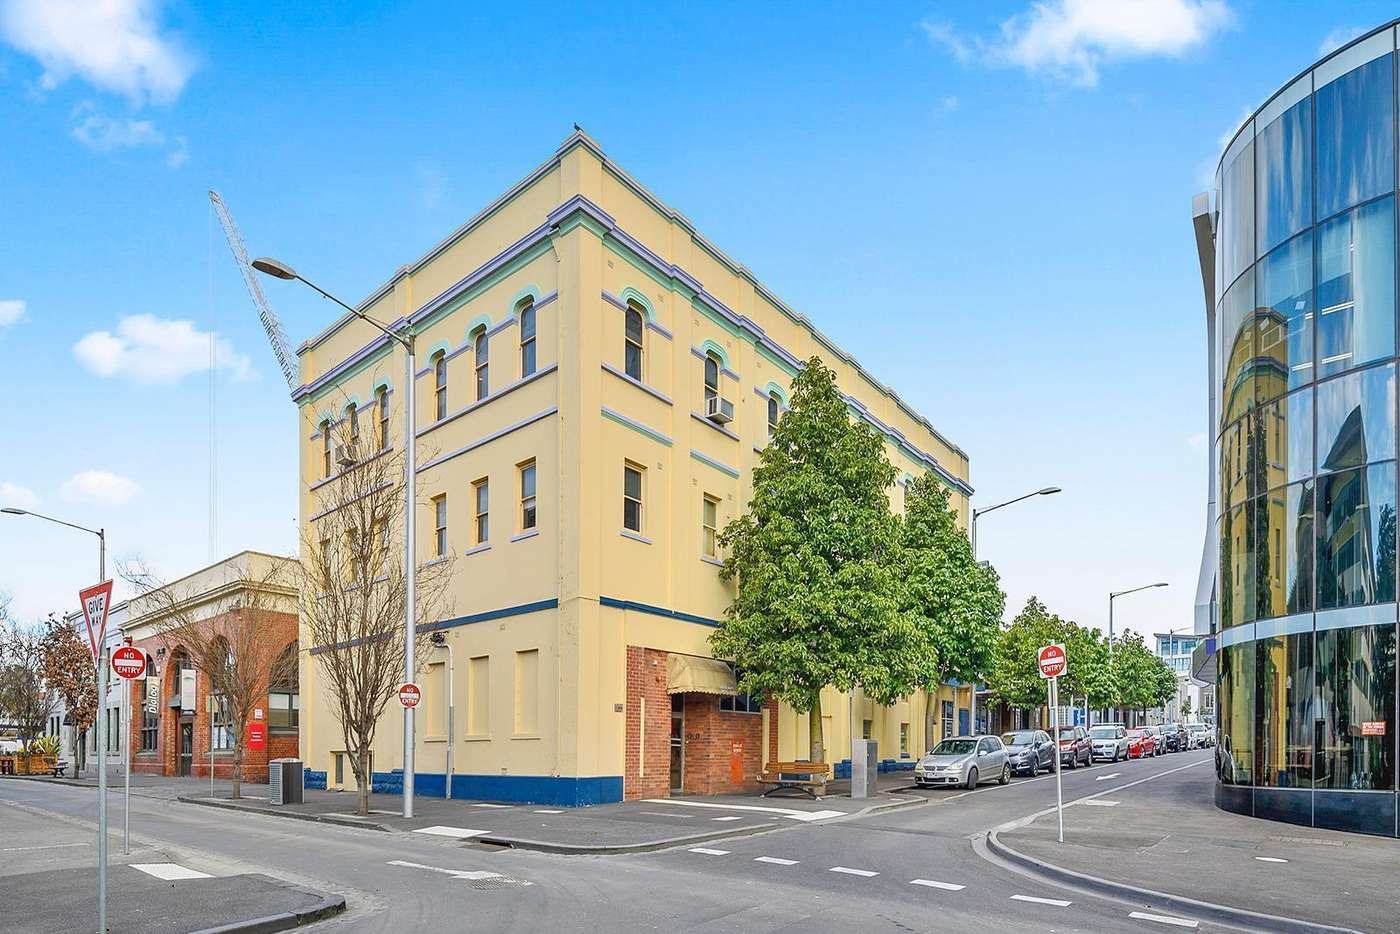 Main view of Homely apartment listing, 109 /1-3 Clare Street, Geelong VIC 3220